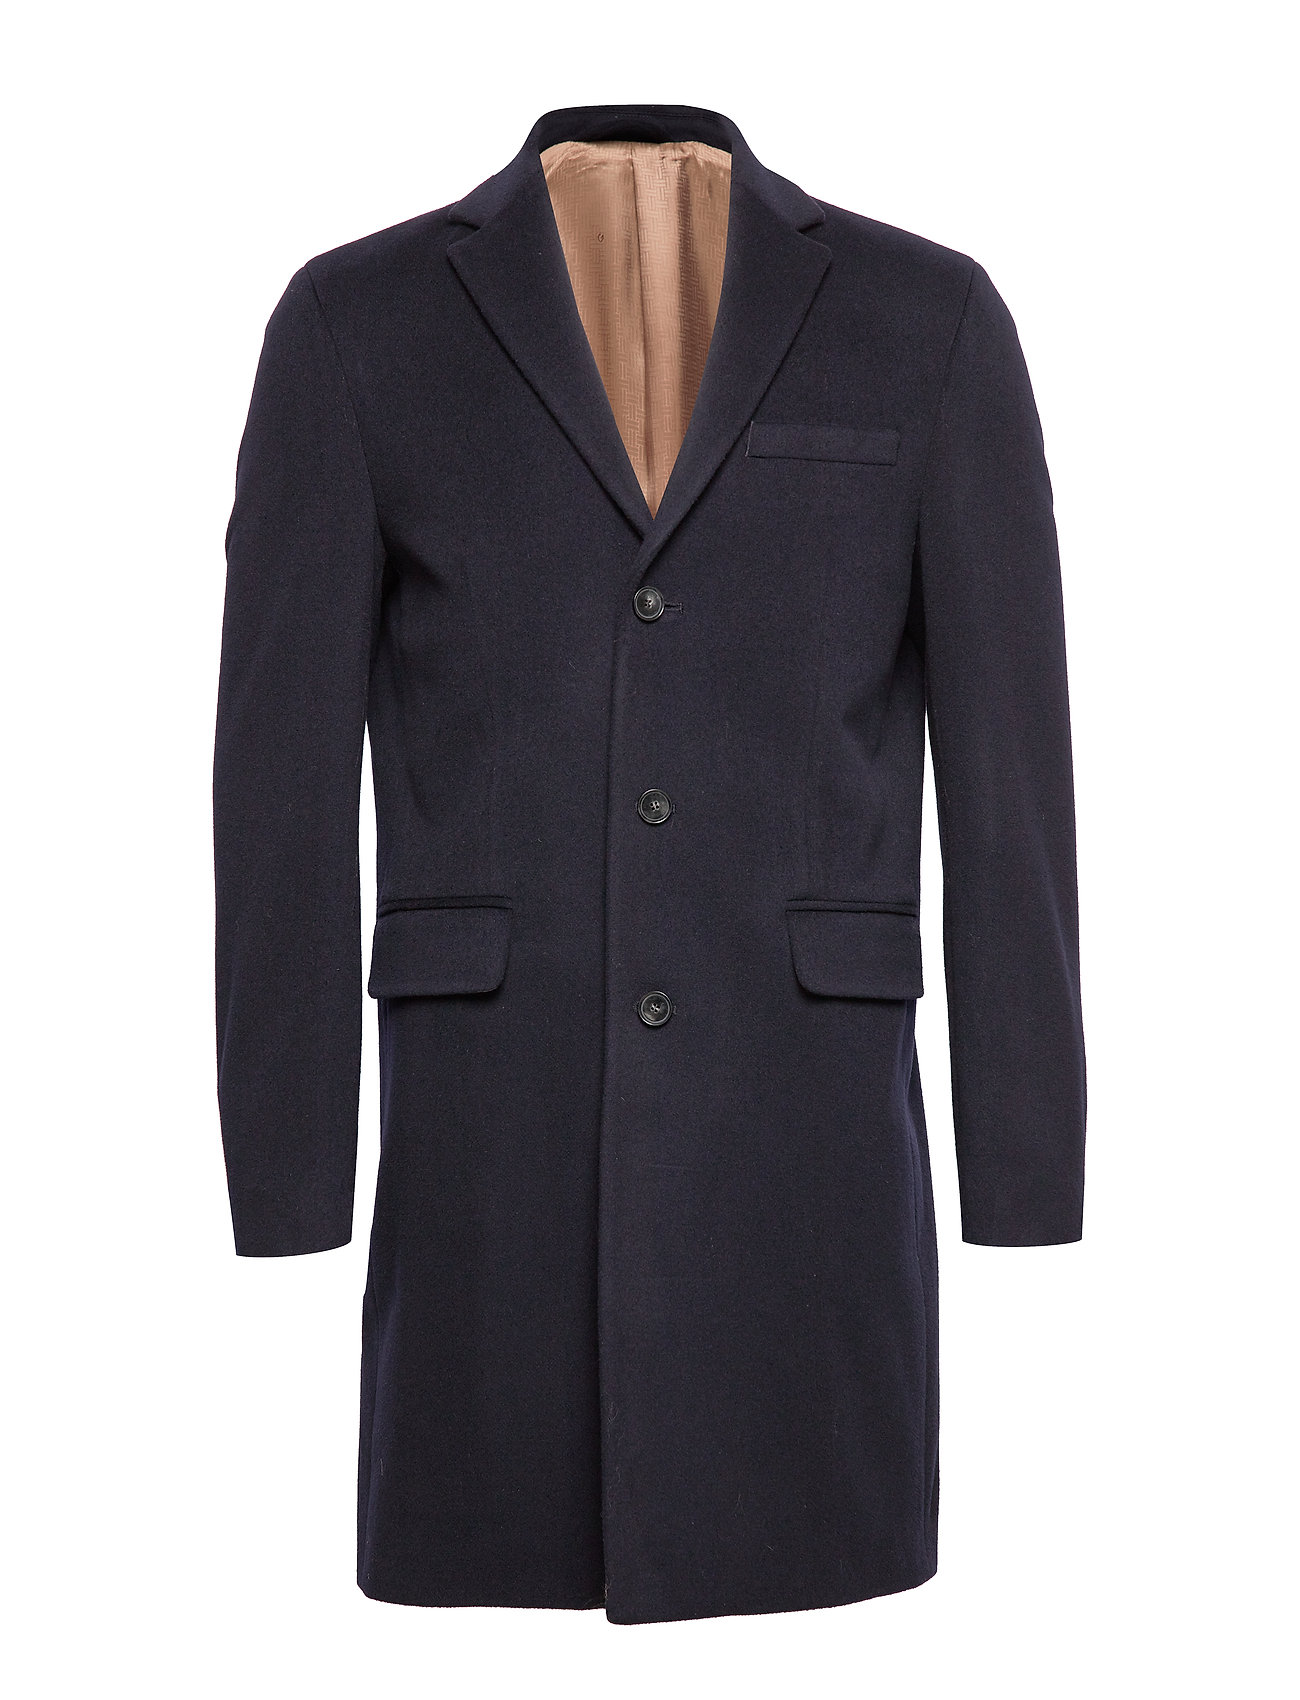 GANT D1. THE CLASSIC WOOL COAT - MARINE